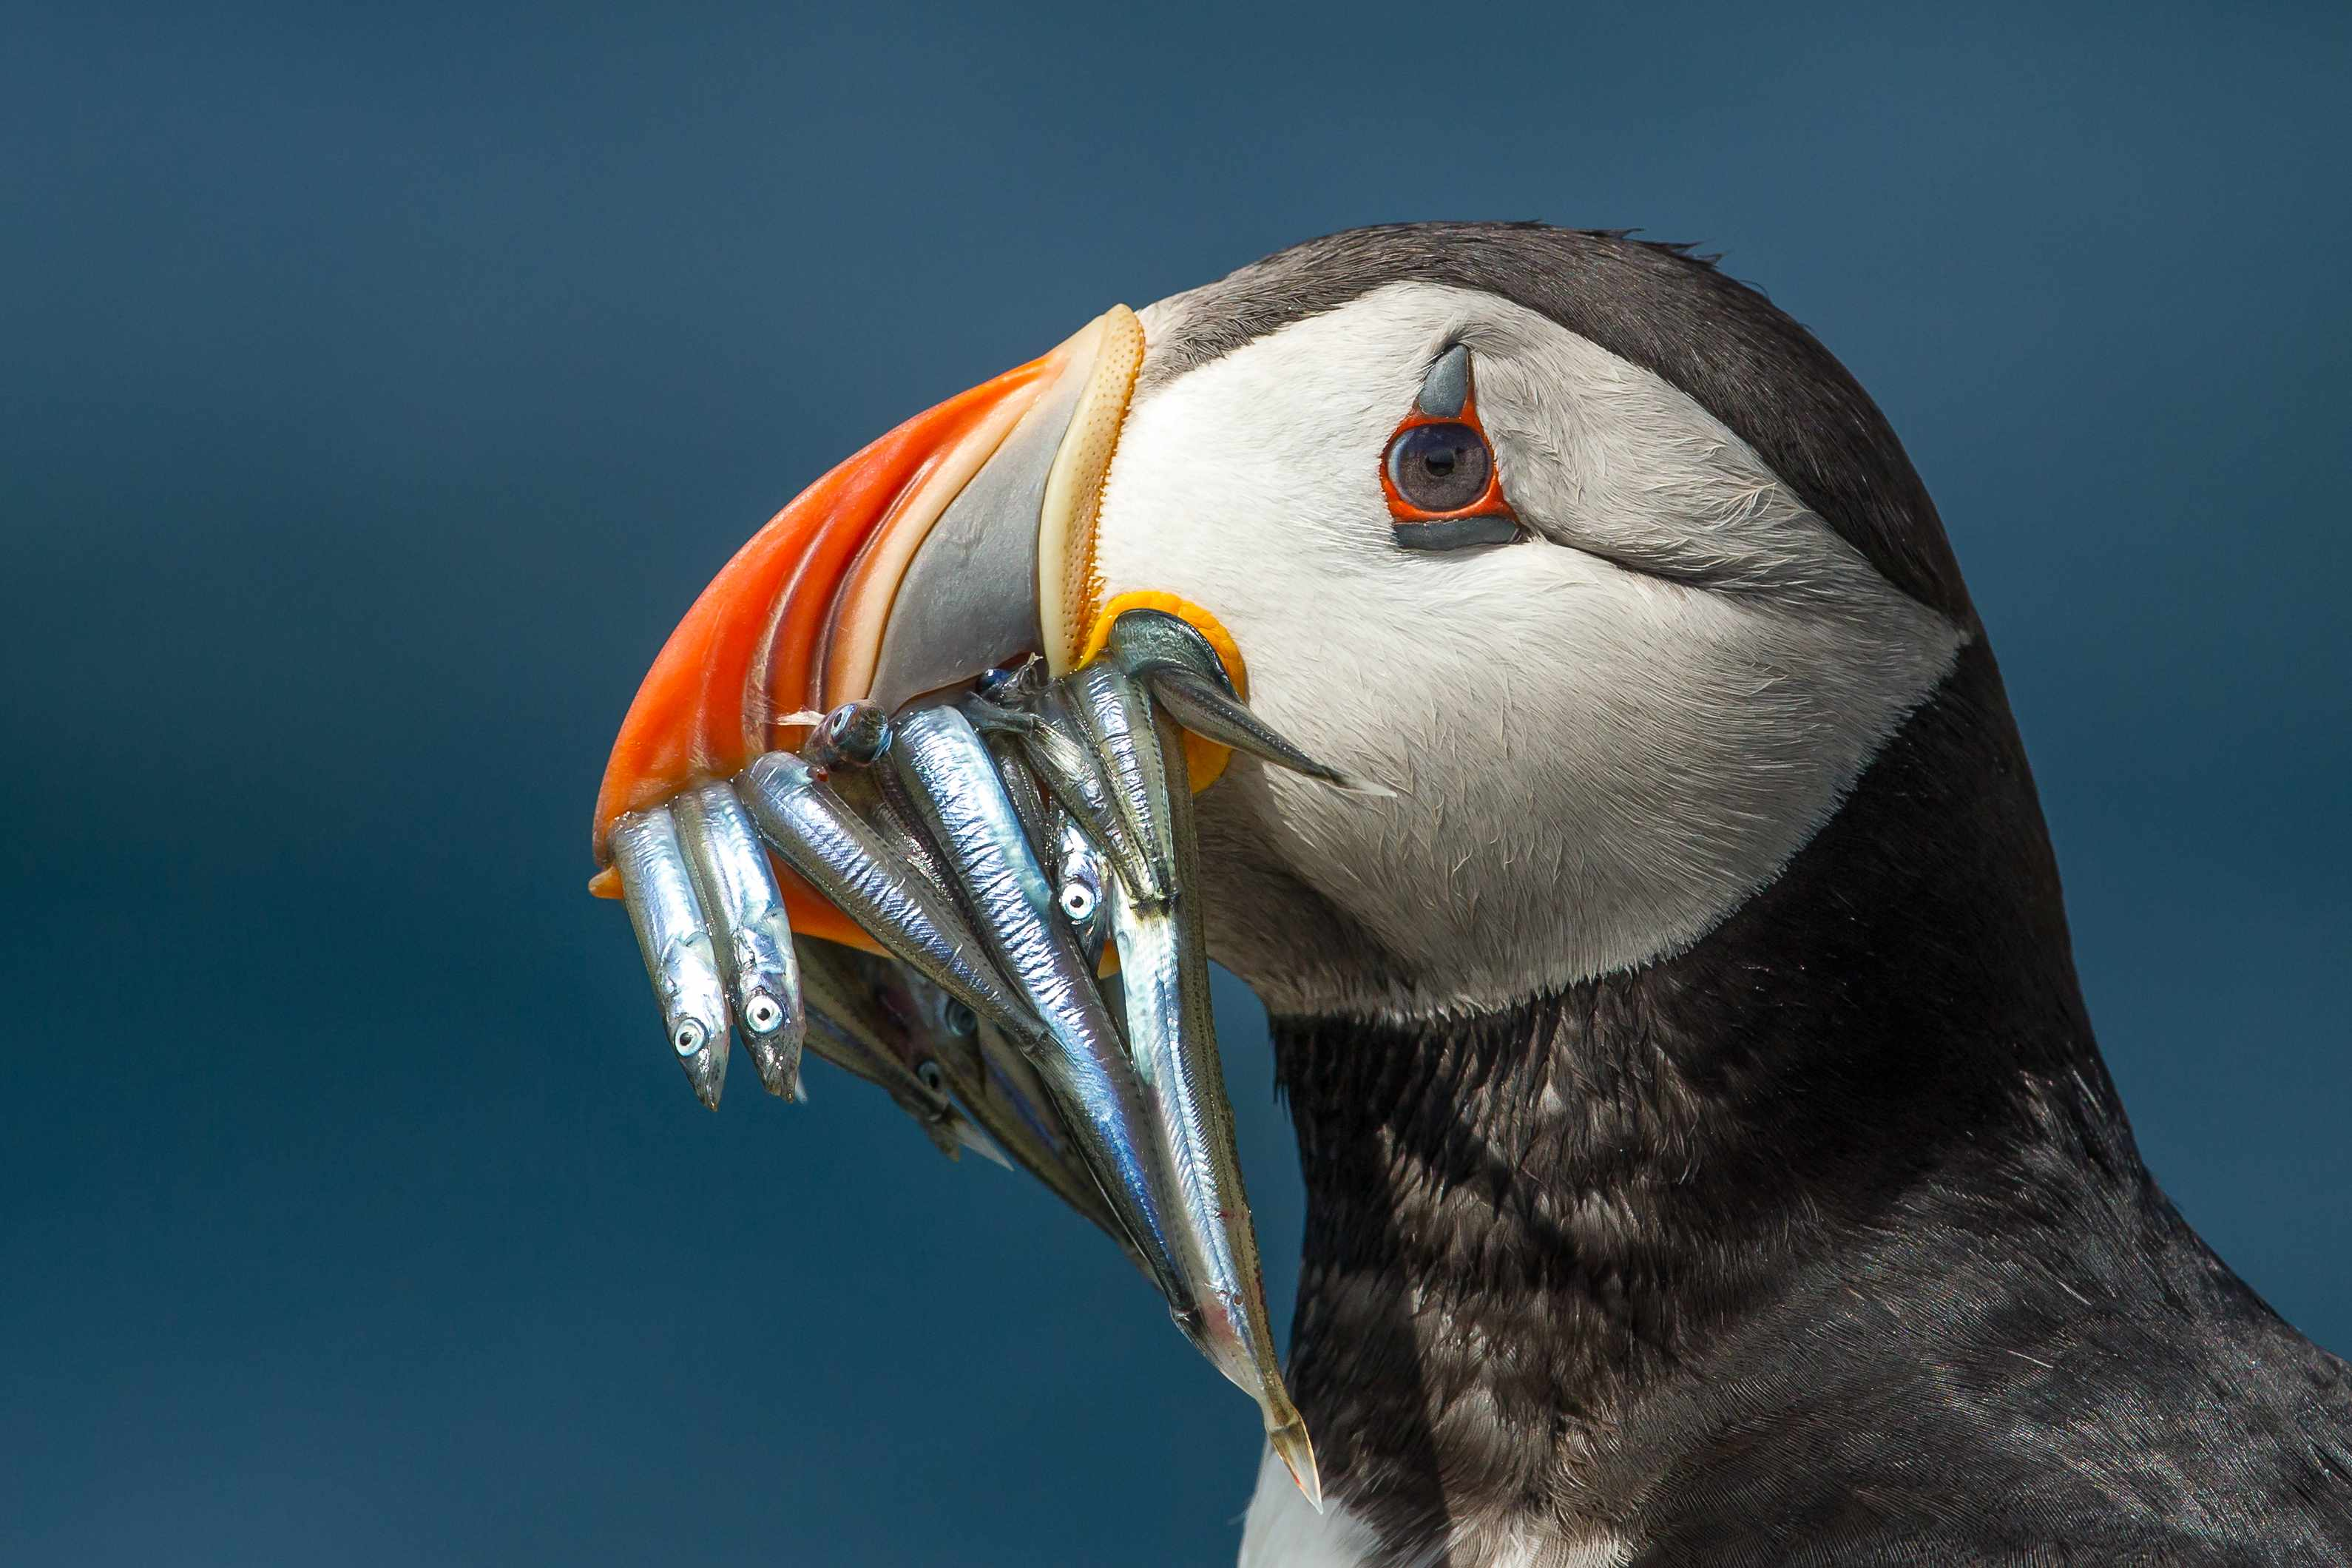 Atlantic puffin (Fratercula arctica) with a beak full of sandeels